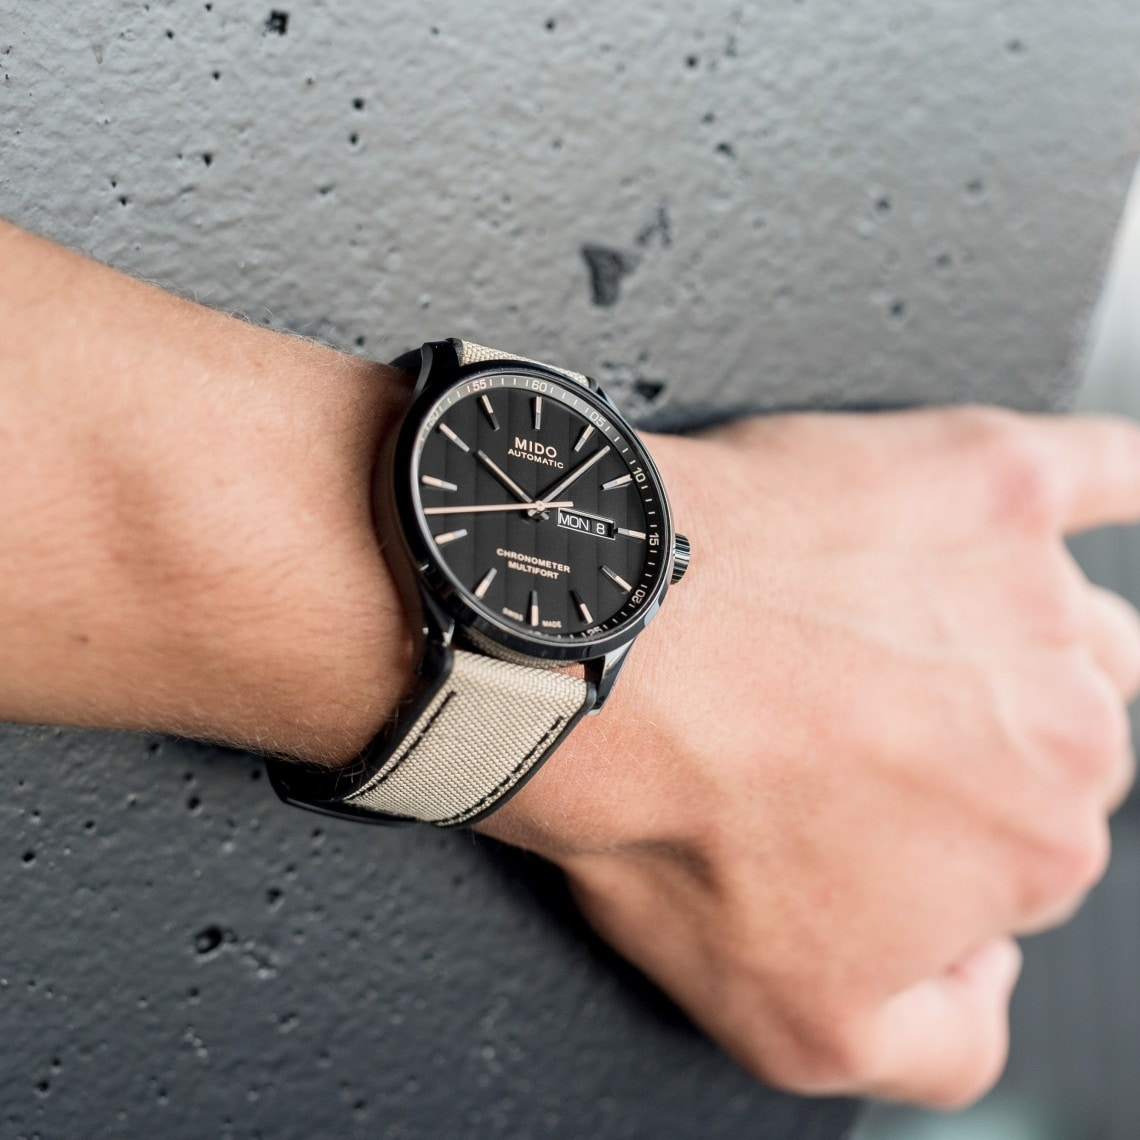 Guess Watches Real Or Fake